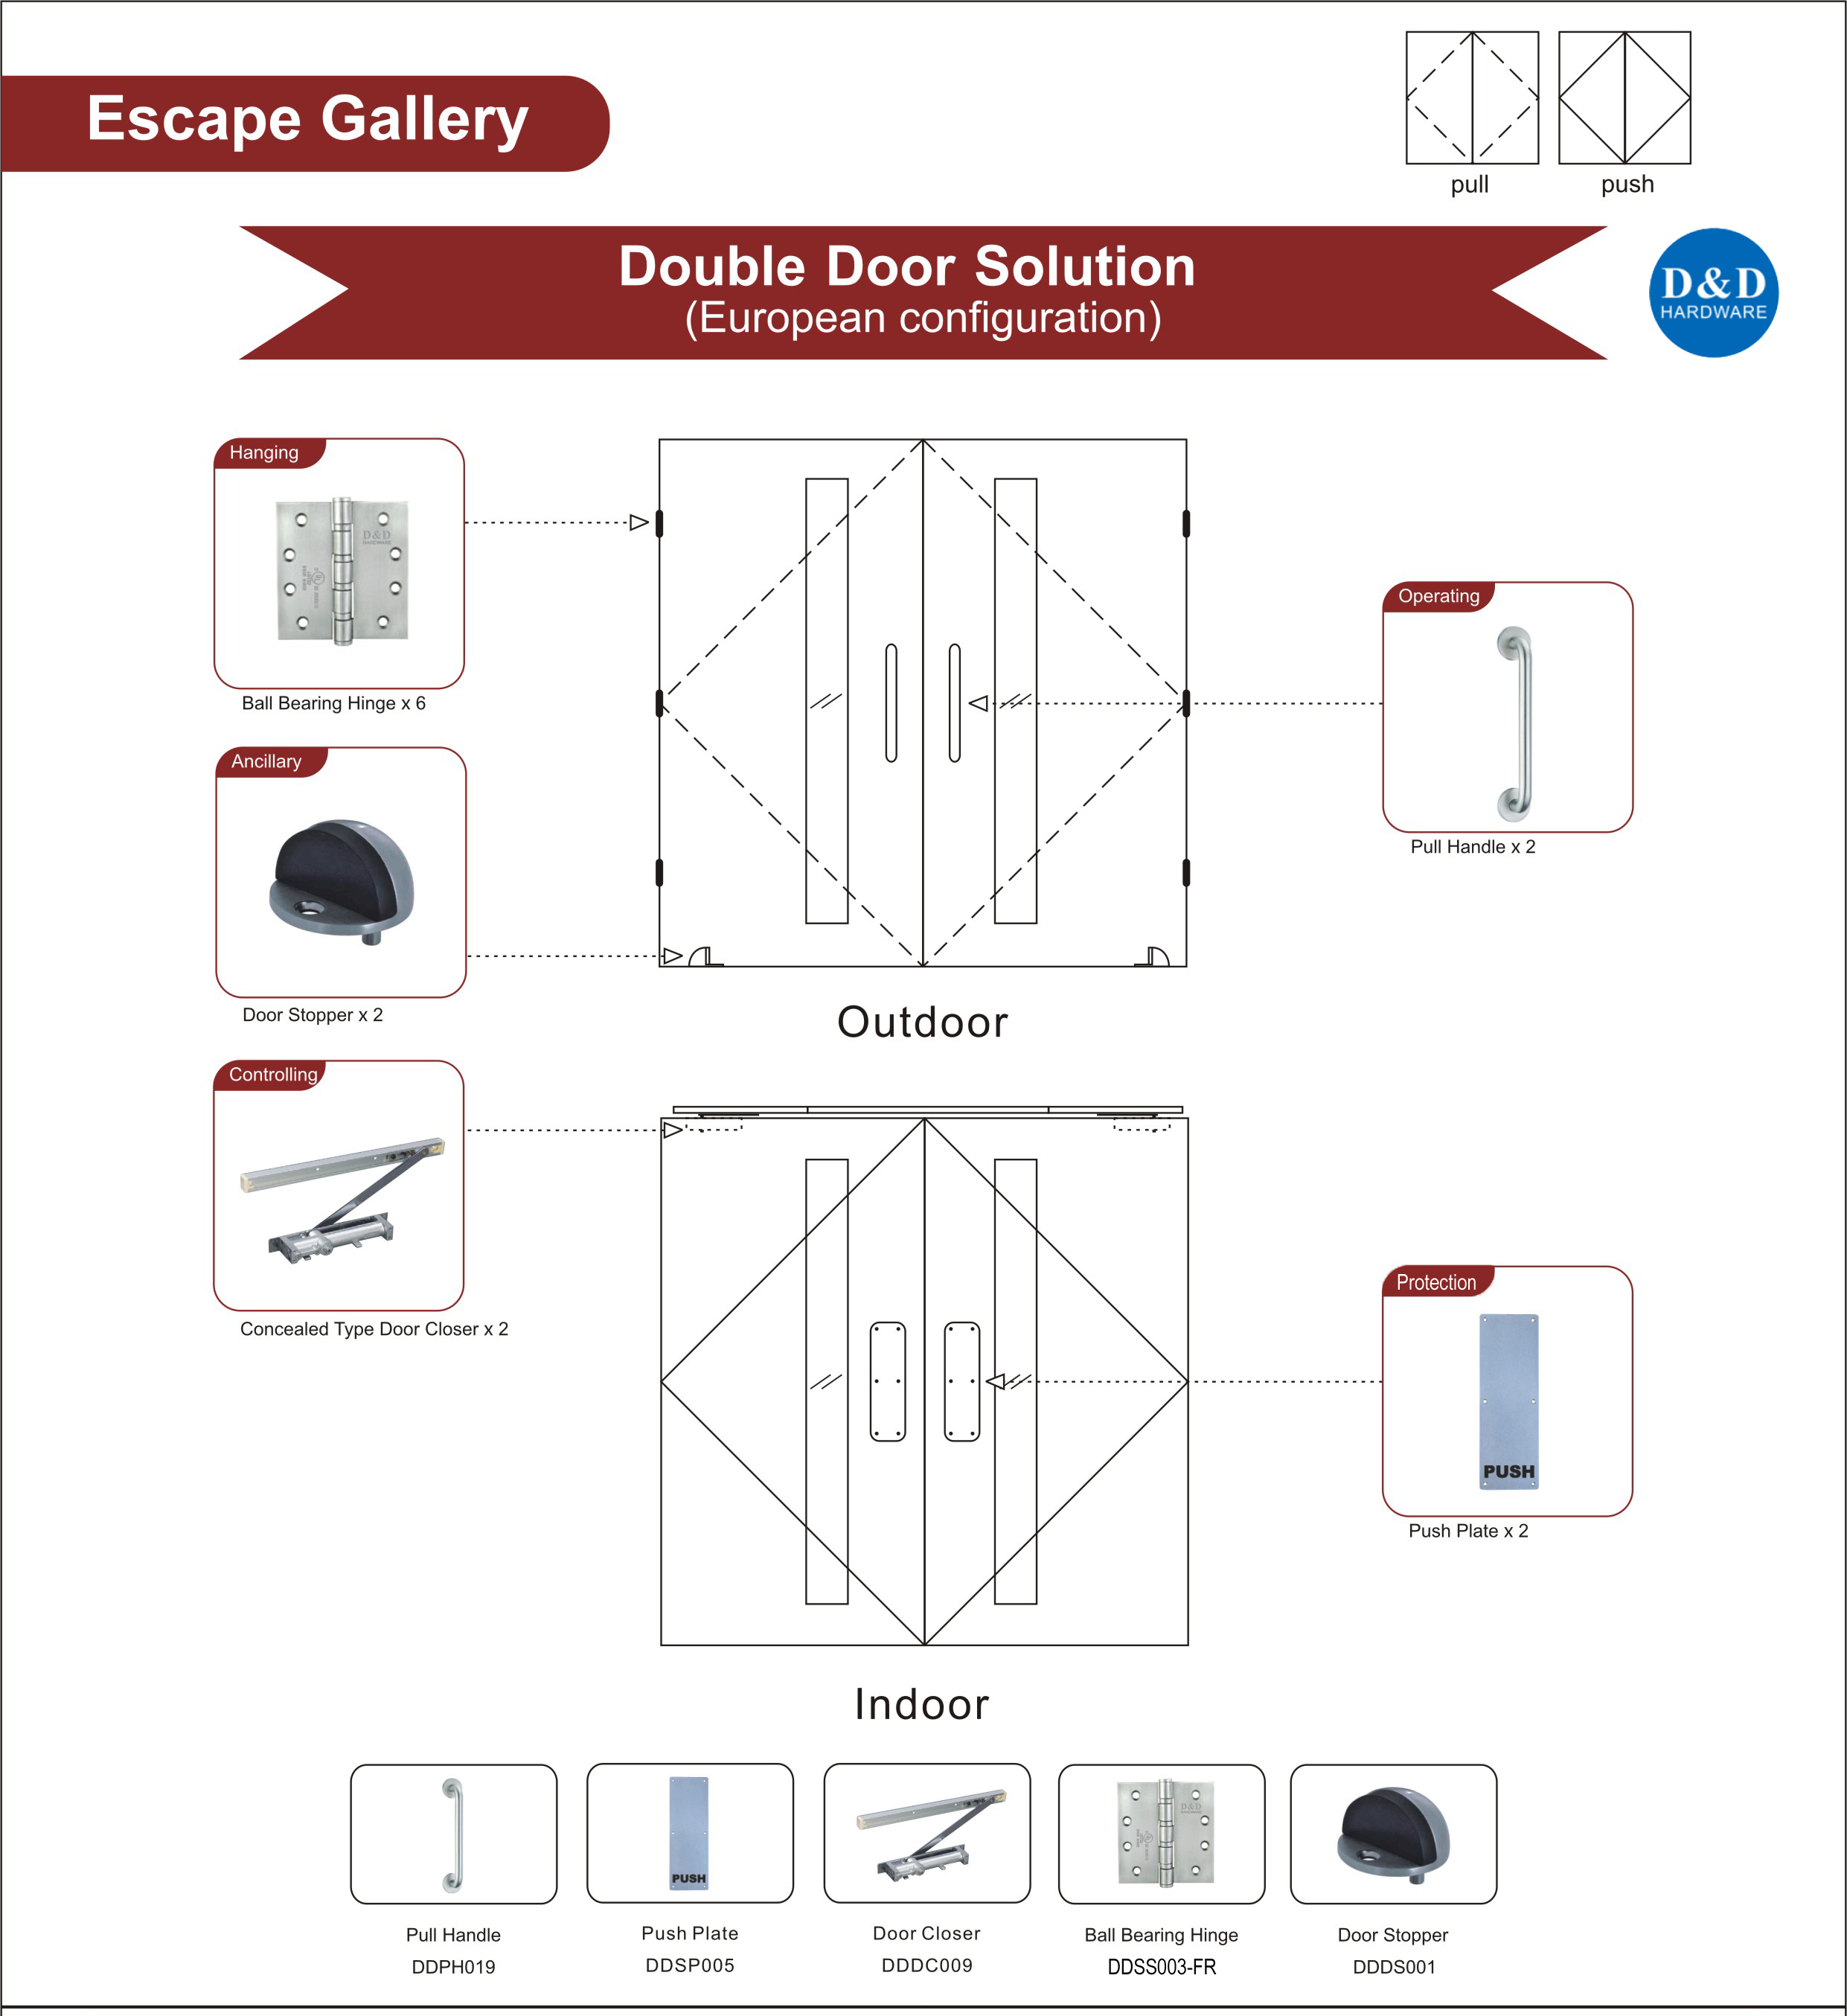 Fire Rated Wooden Sound Insulation Door Hardware for Escape Gallery Double Door